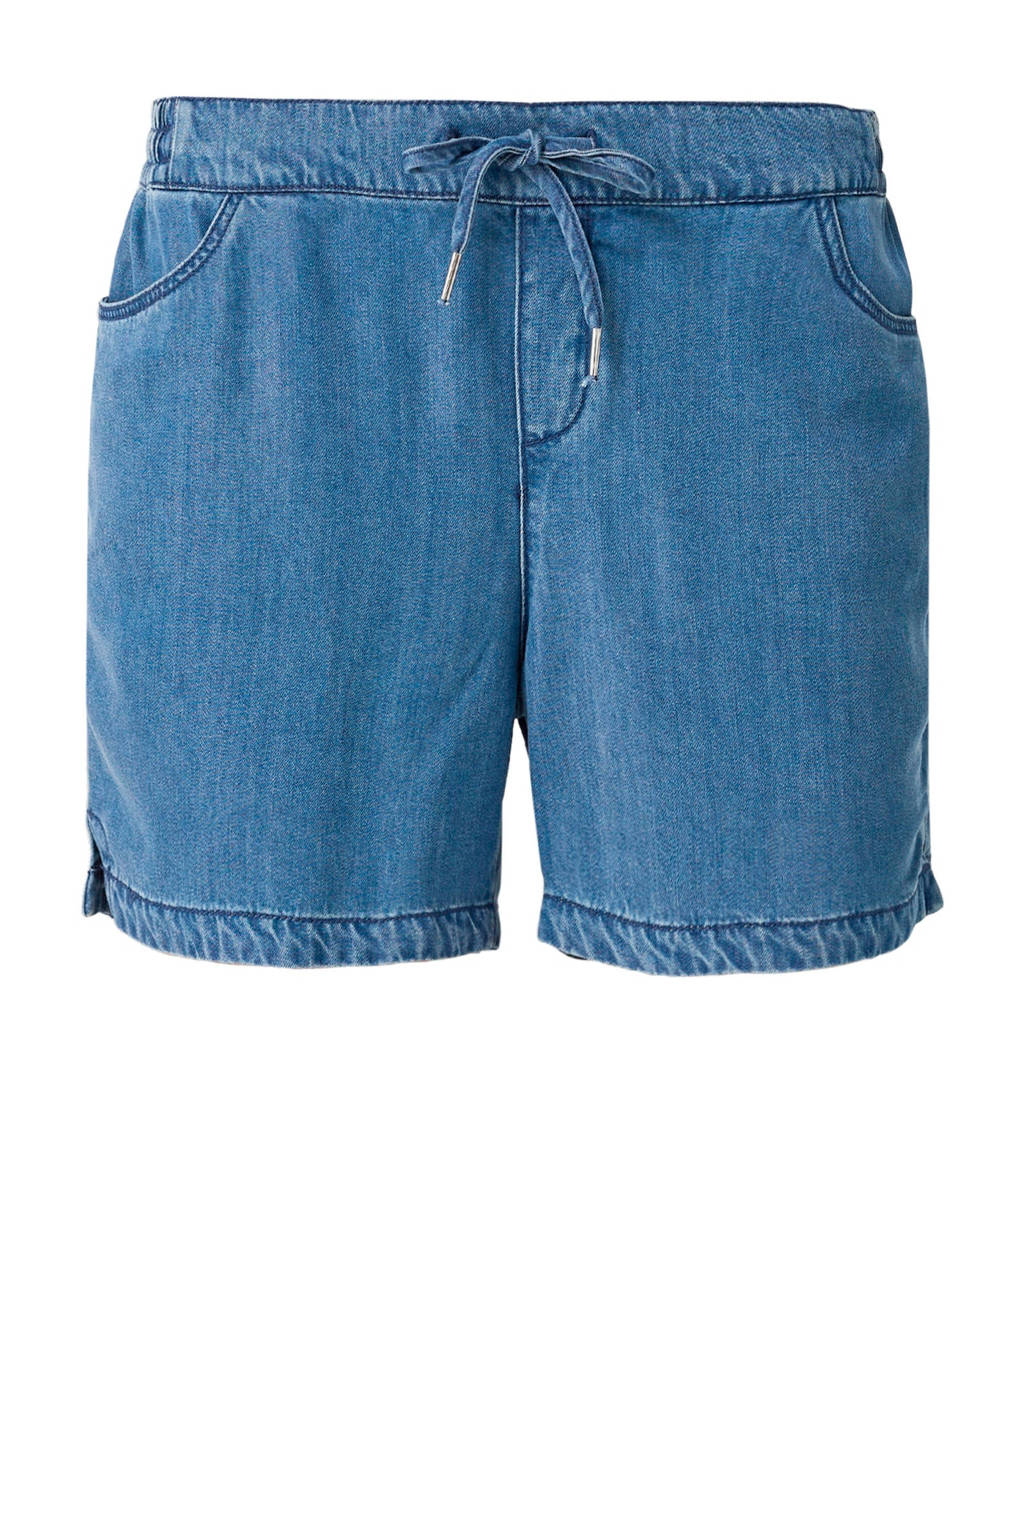 s.Oliver loose fit jeans short, Blauw